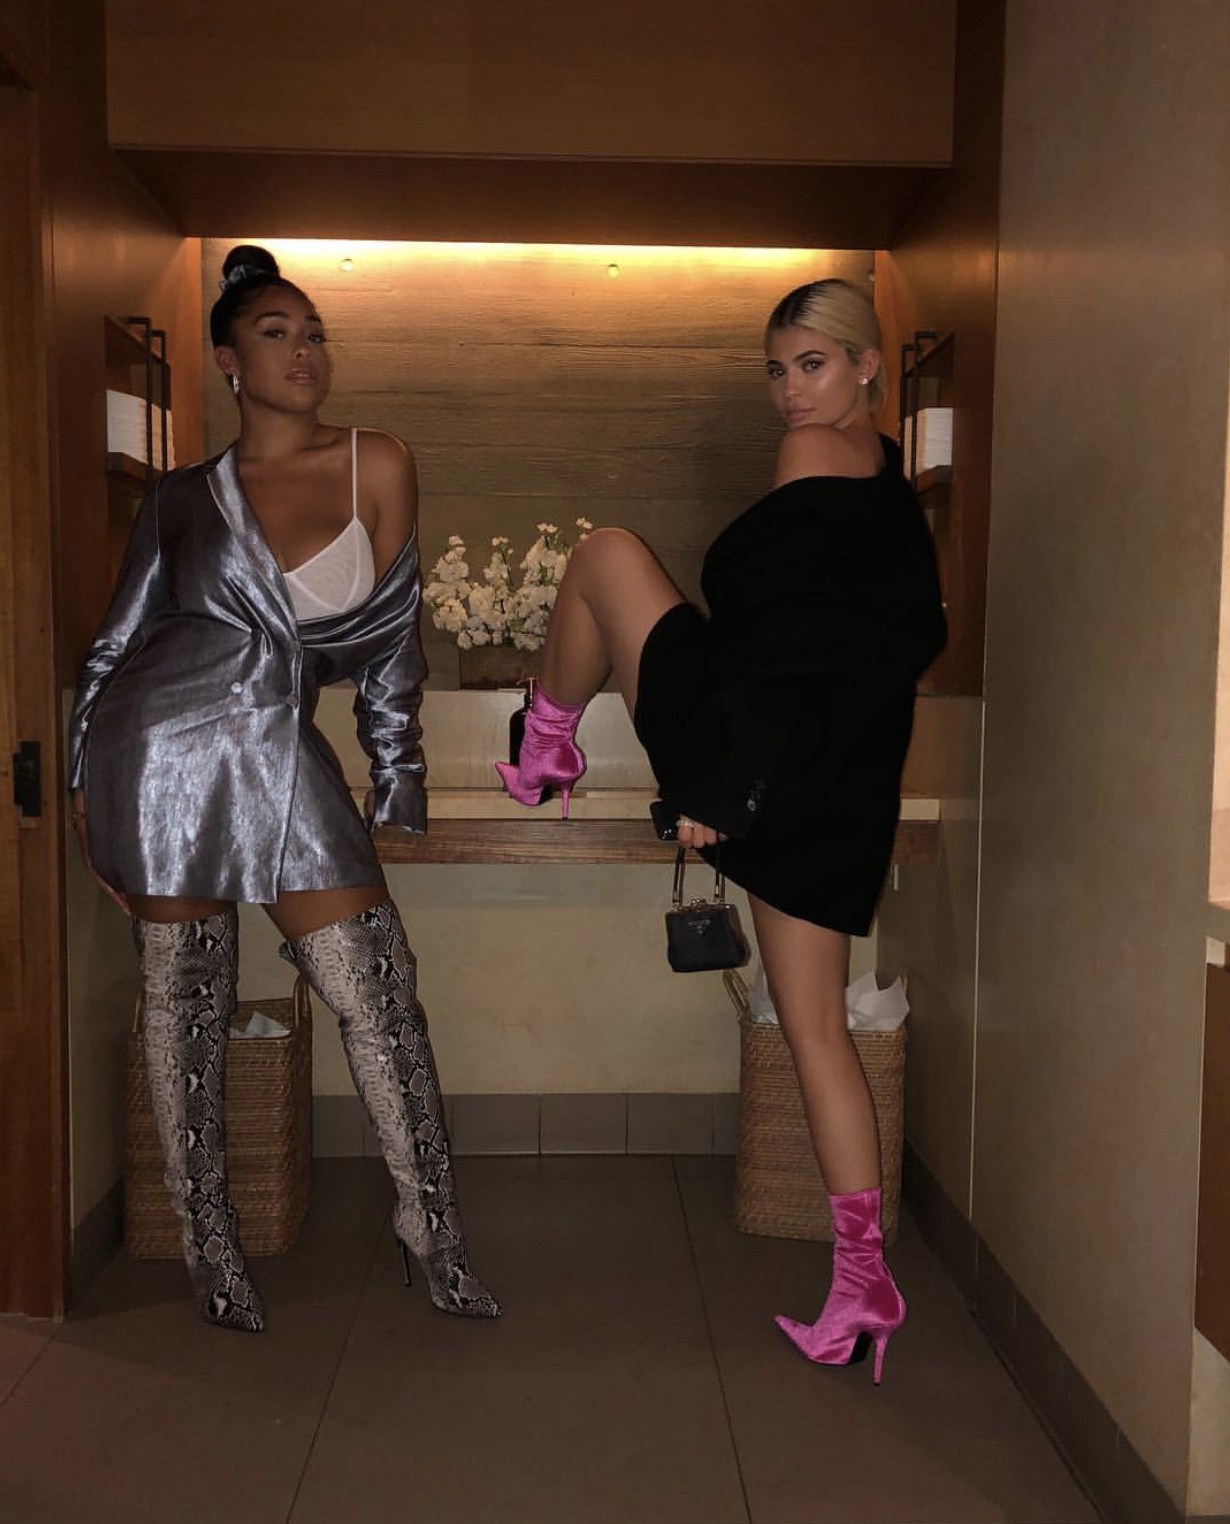 Kylie Jenner and BFF Jordyn Woods show what really happens in the womens' toilets